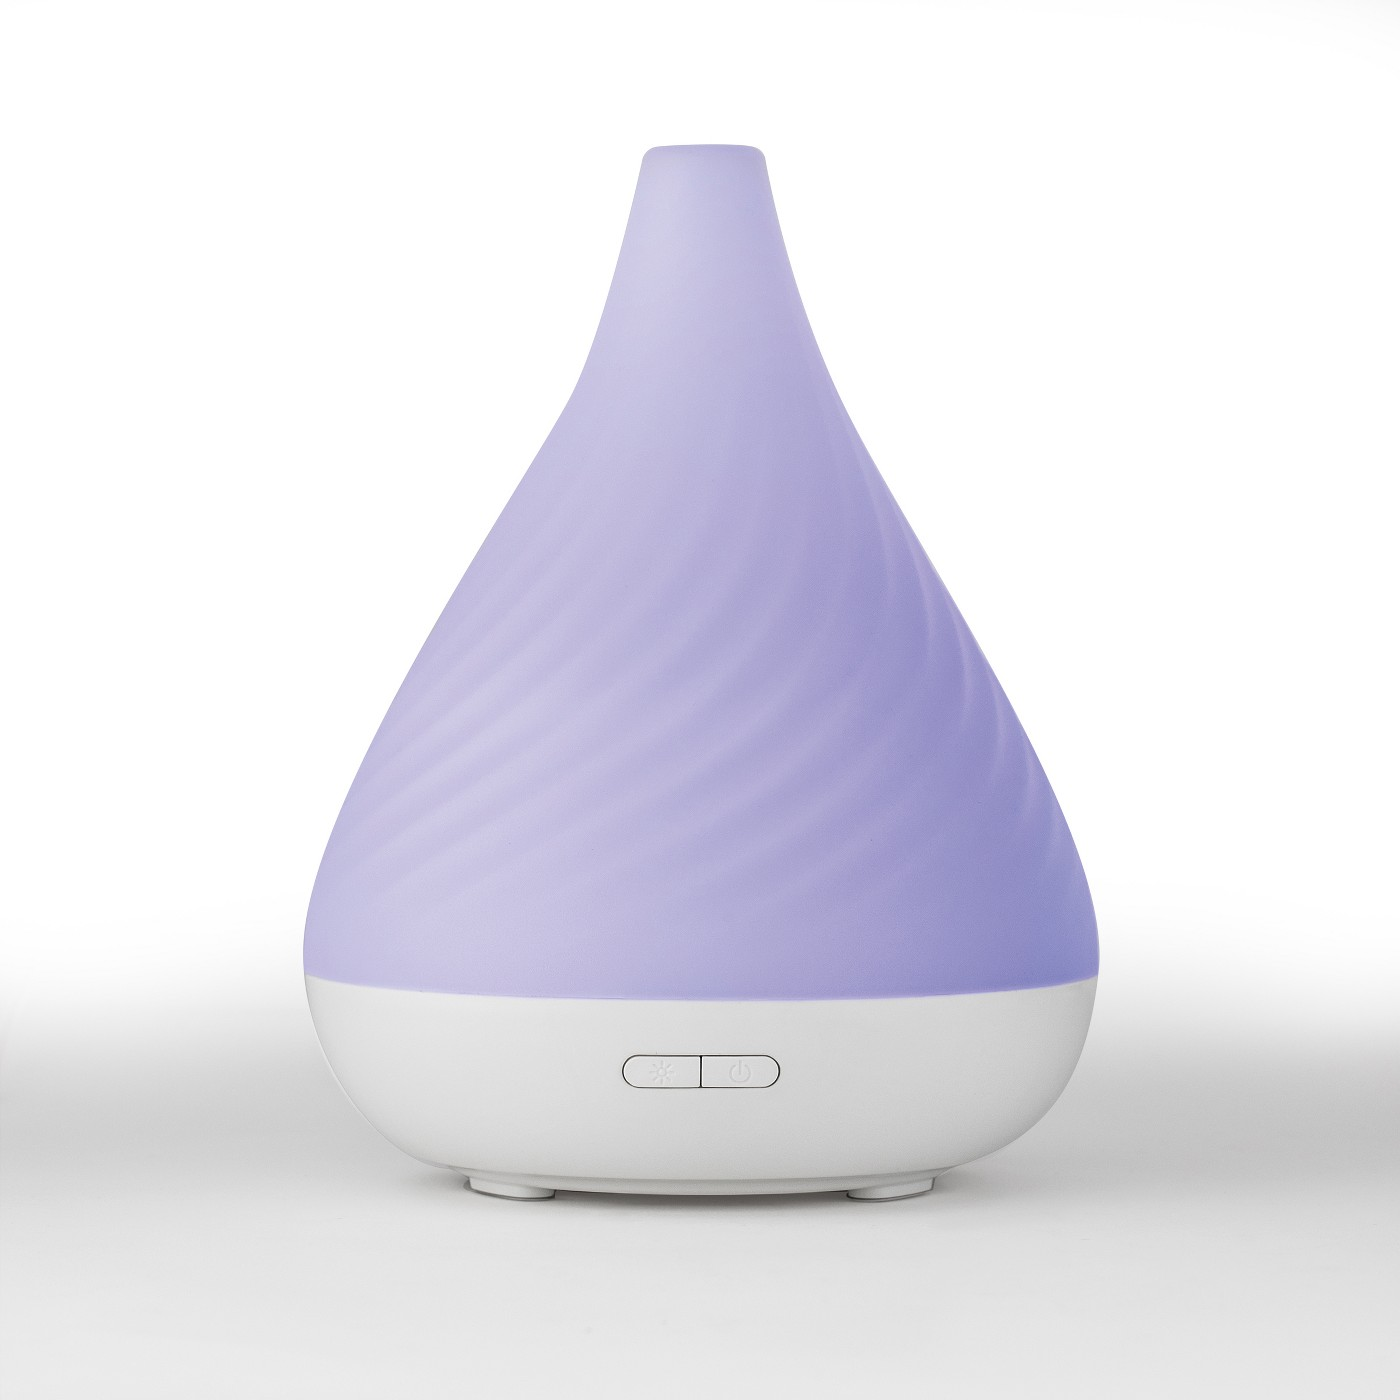 Aromatherapy Oil Diffuser Helix - SpaRoom - image 2 of 3